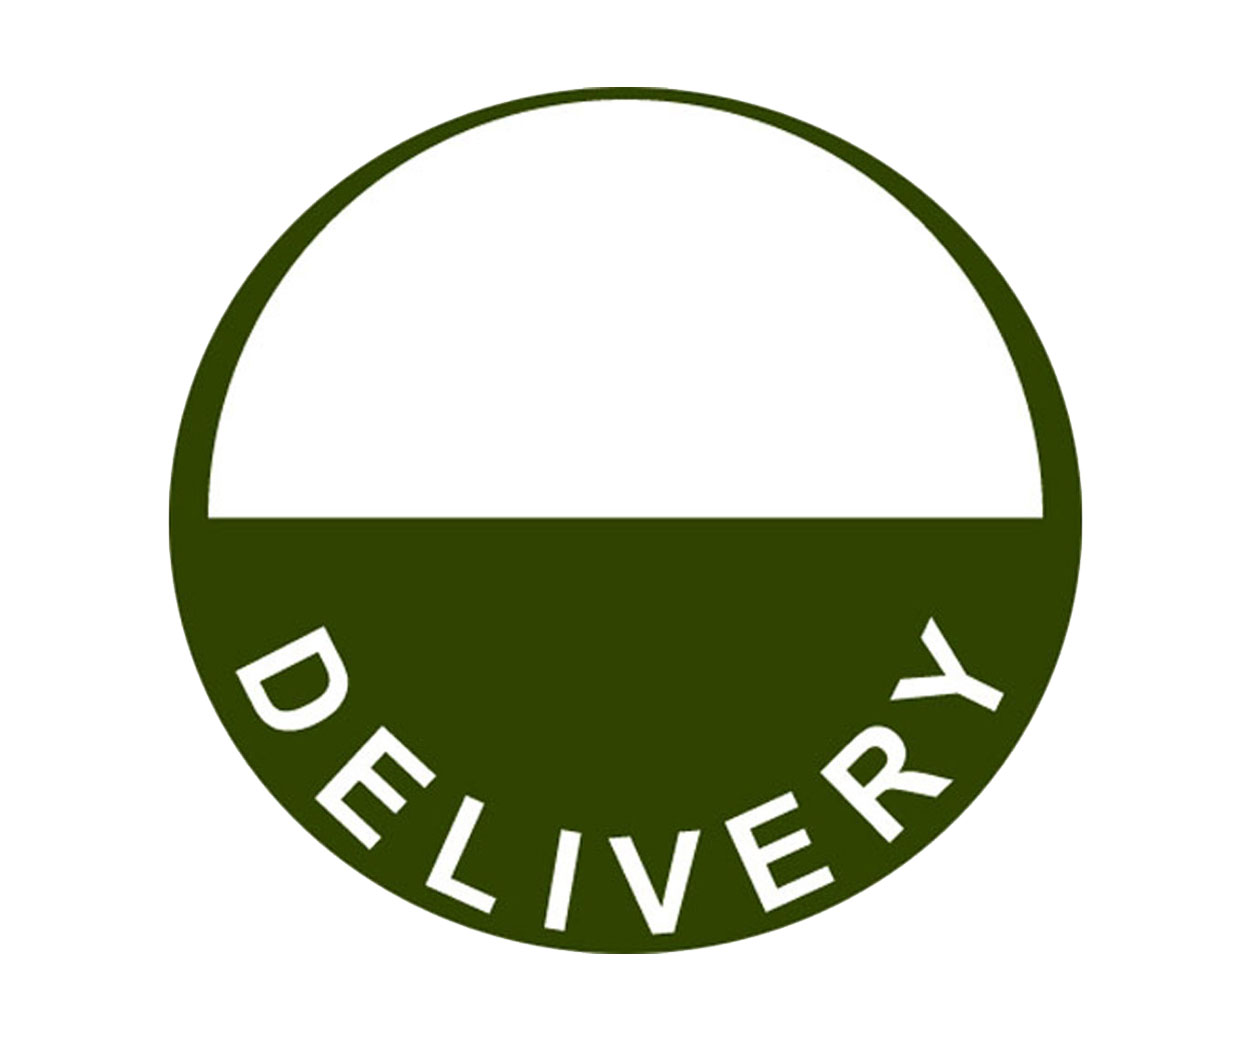 Delivery Prescription Alert Stickers - half moon version - Pack of 1000